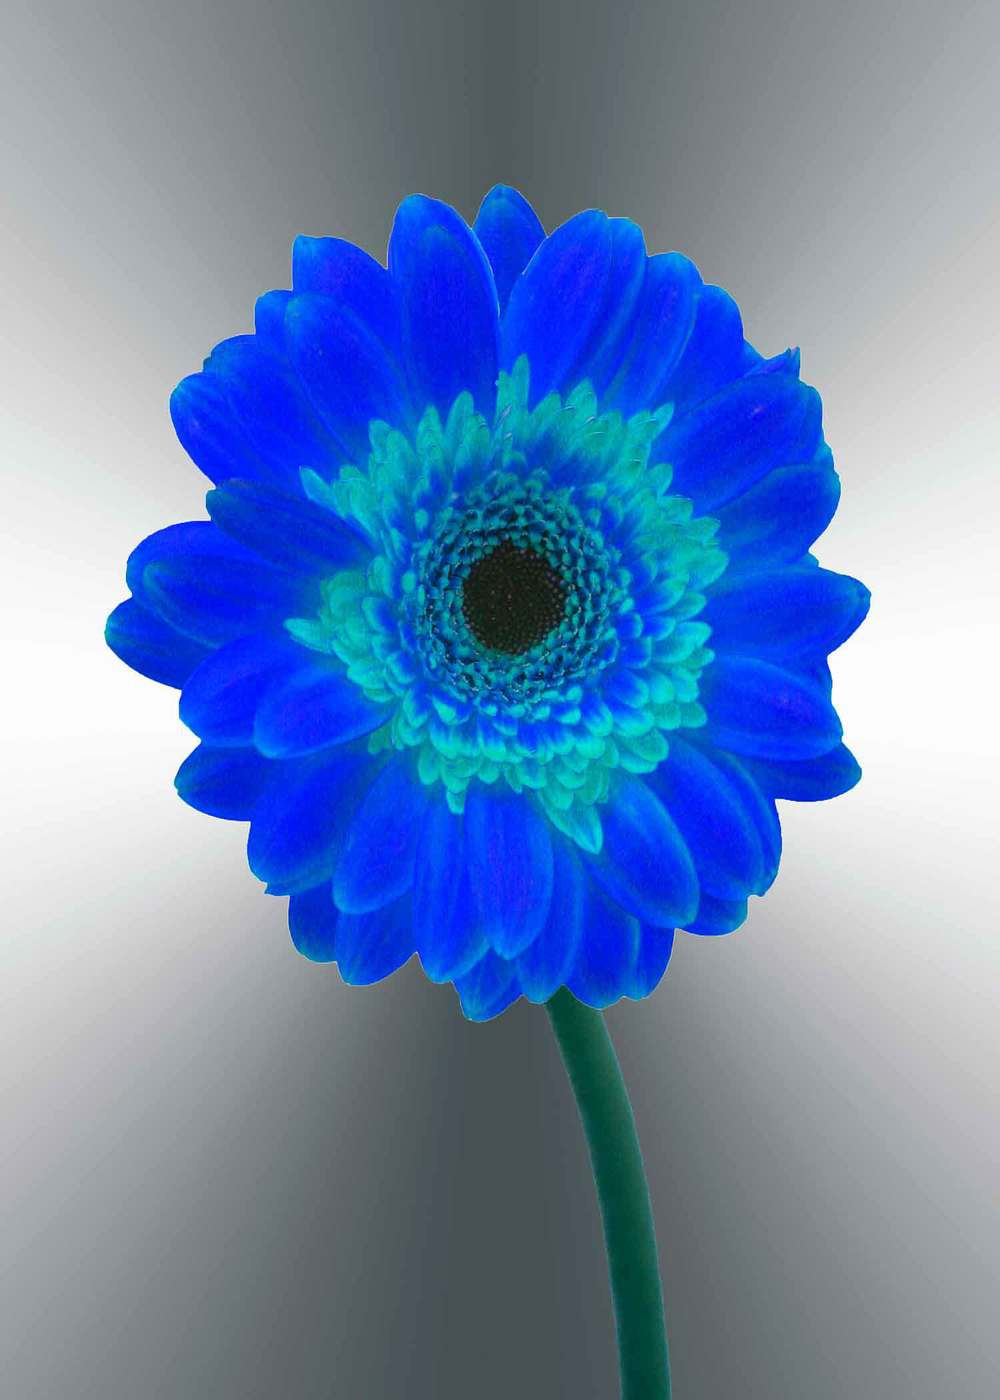 blue-gerger-daisy-5x7-(22-of-236)-Edit-2-copy-2.jpg